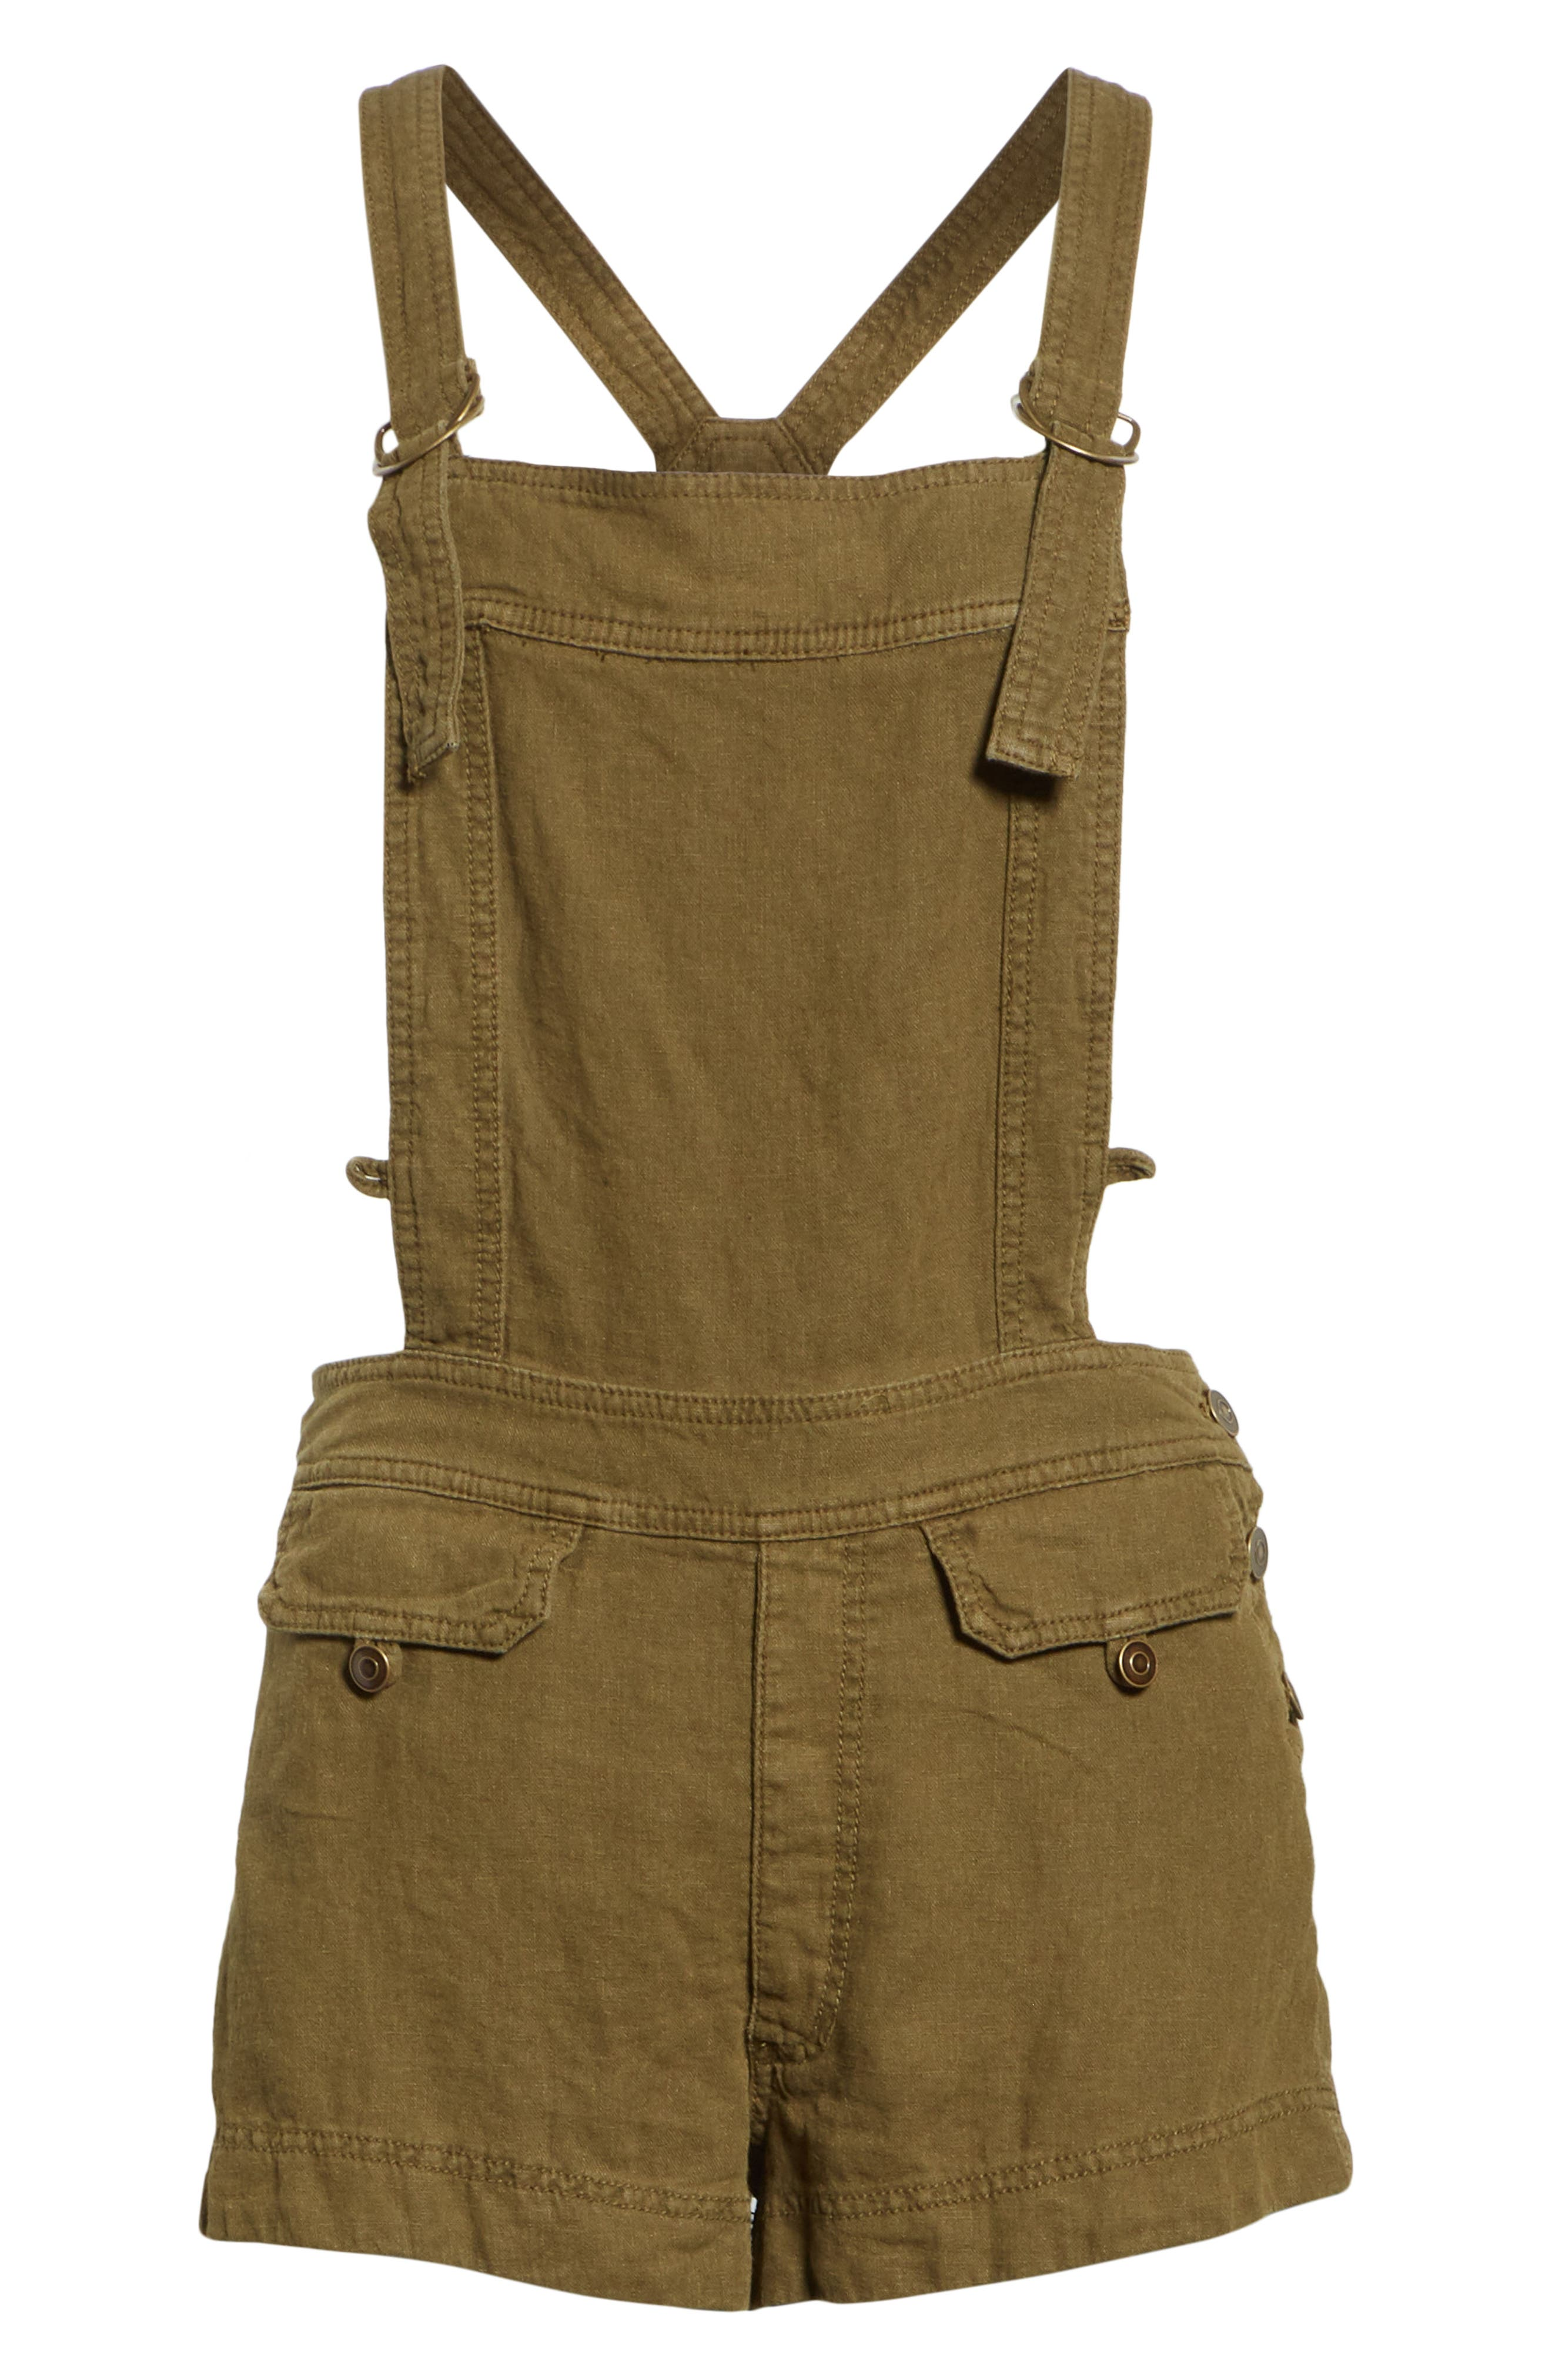 Expedition Short Overalls,                             Alternate thumbnail 6, color,                             Army